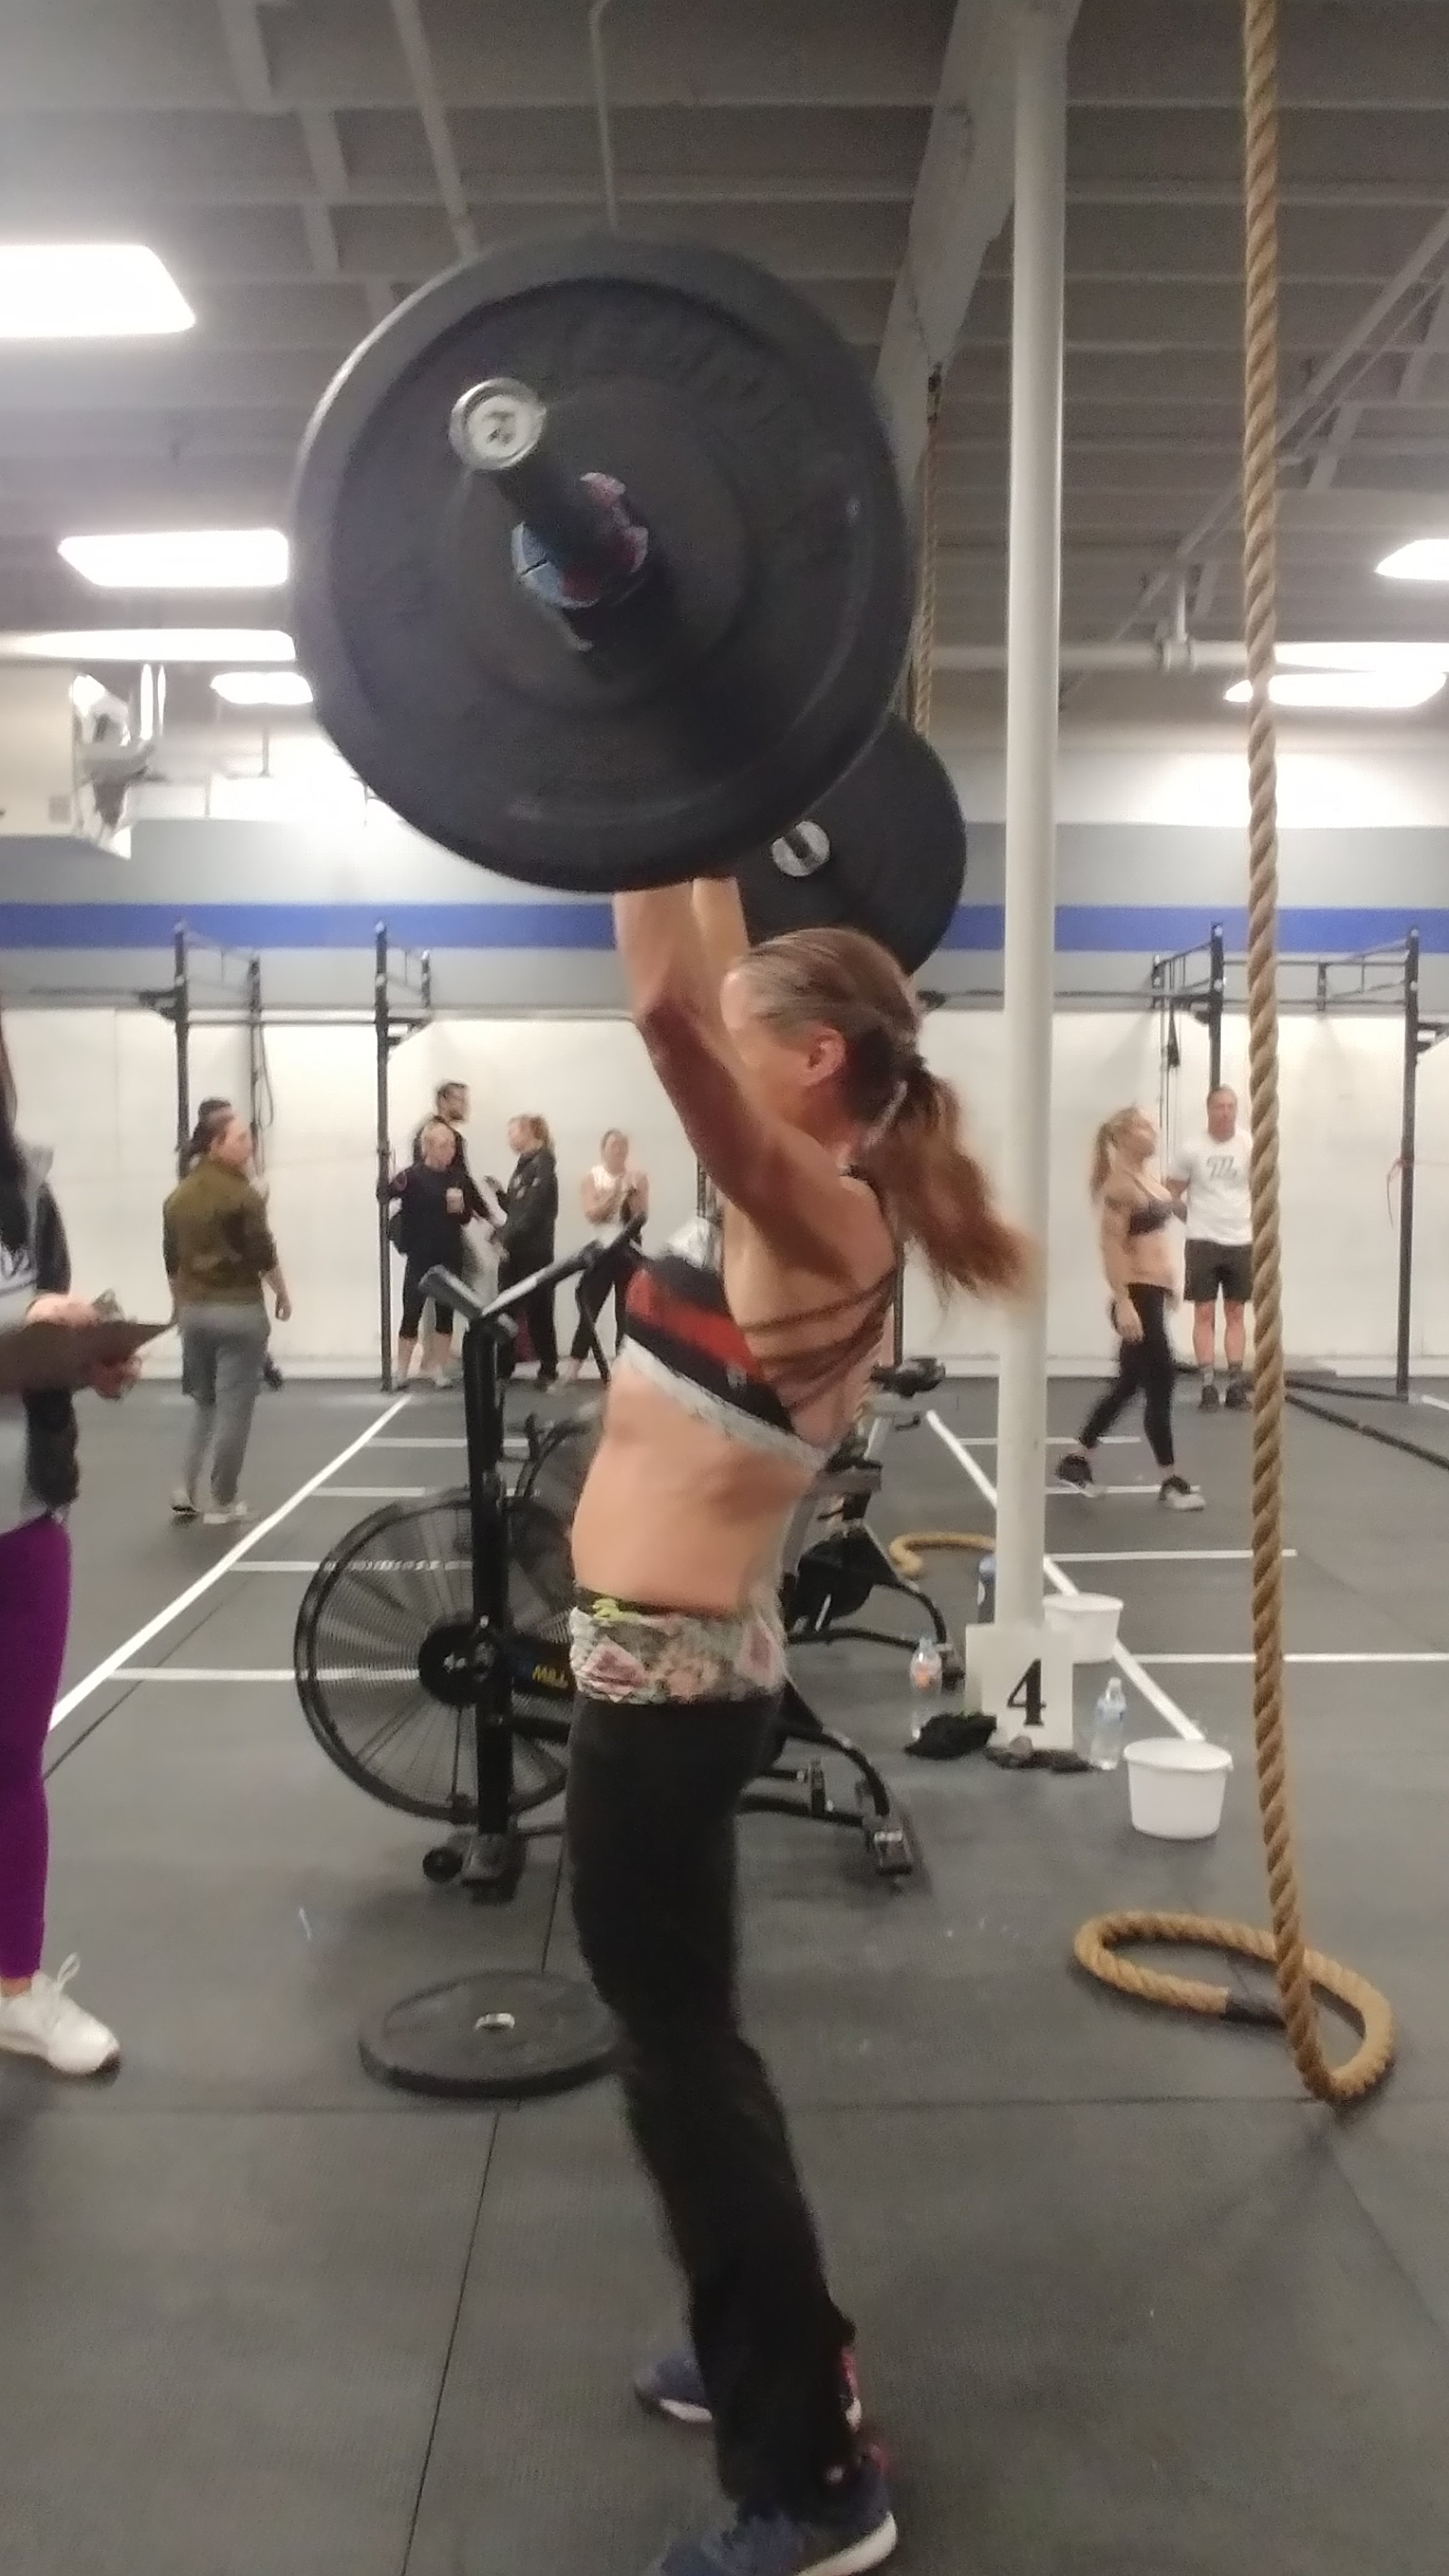 CrossFit hotties doing Push Jerks at CrossFit competition